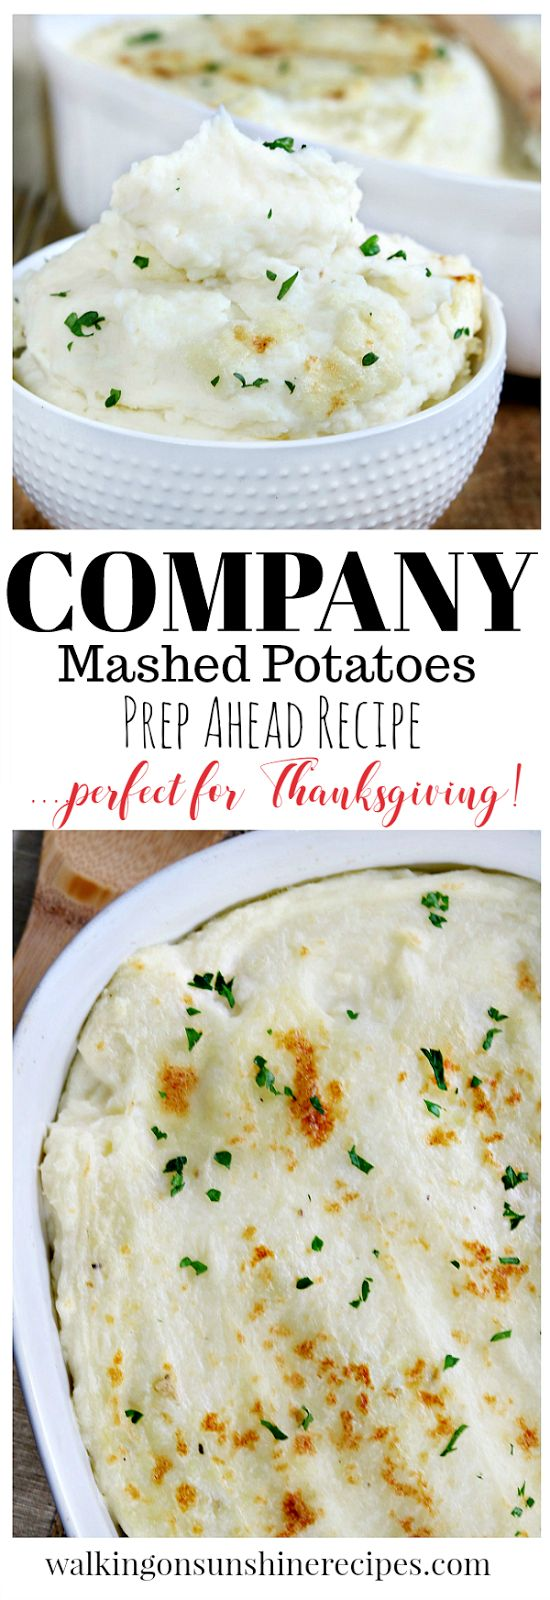 Company Mashed Potatoes Perfect Prep Ahead Recipe for Thanksgiving from Walking on Sunshine Recipes.